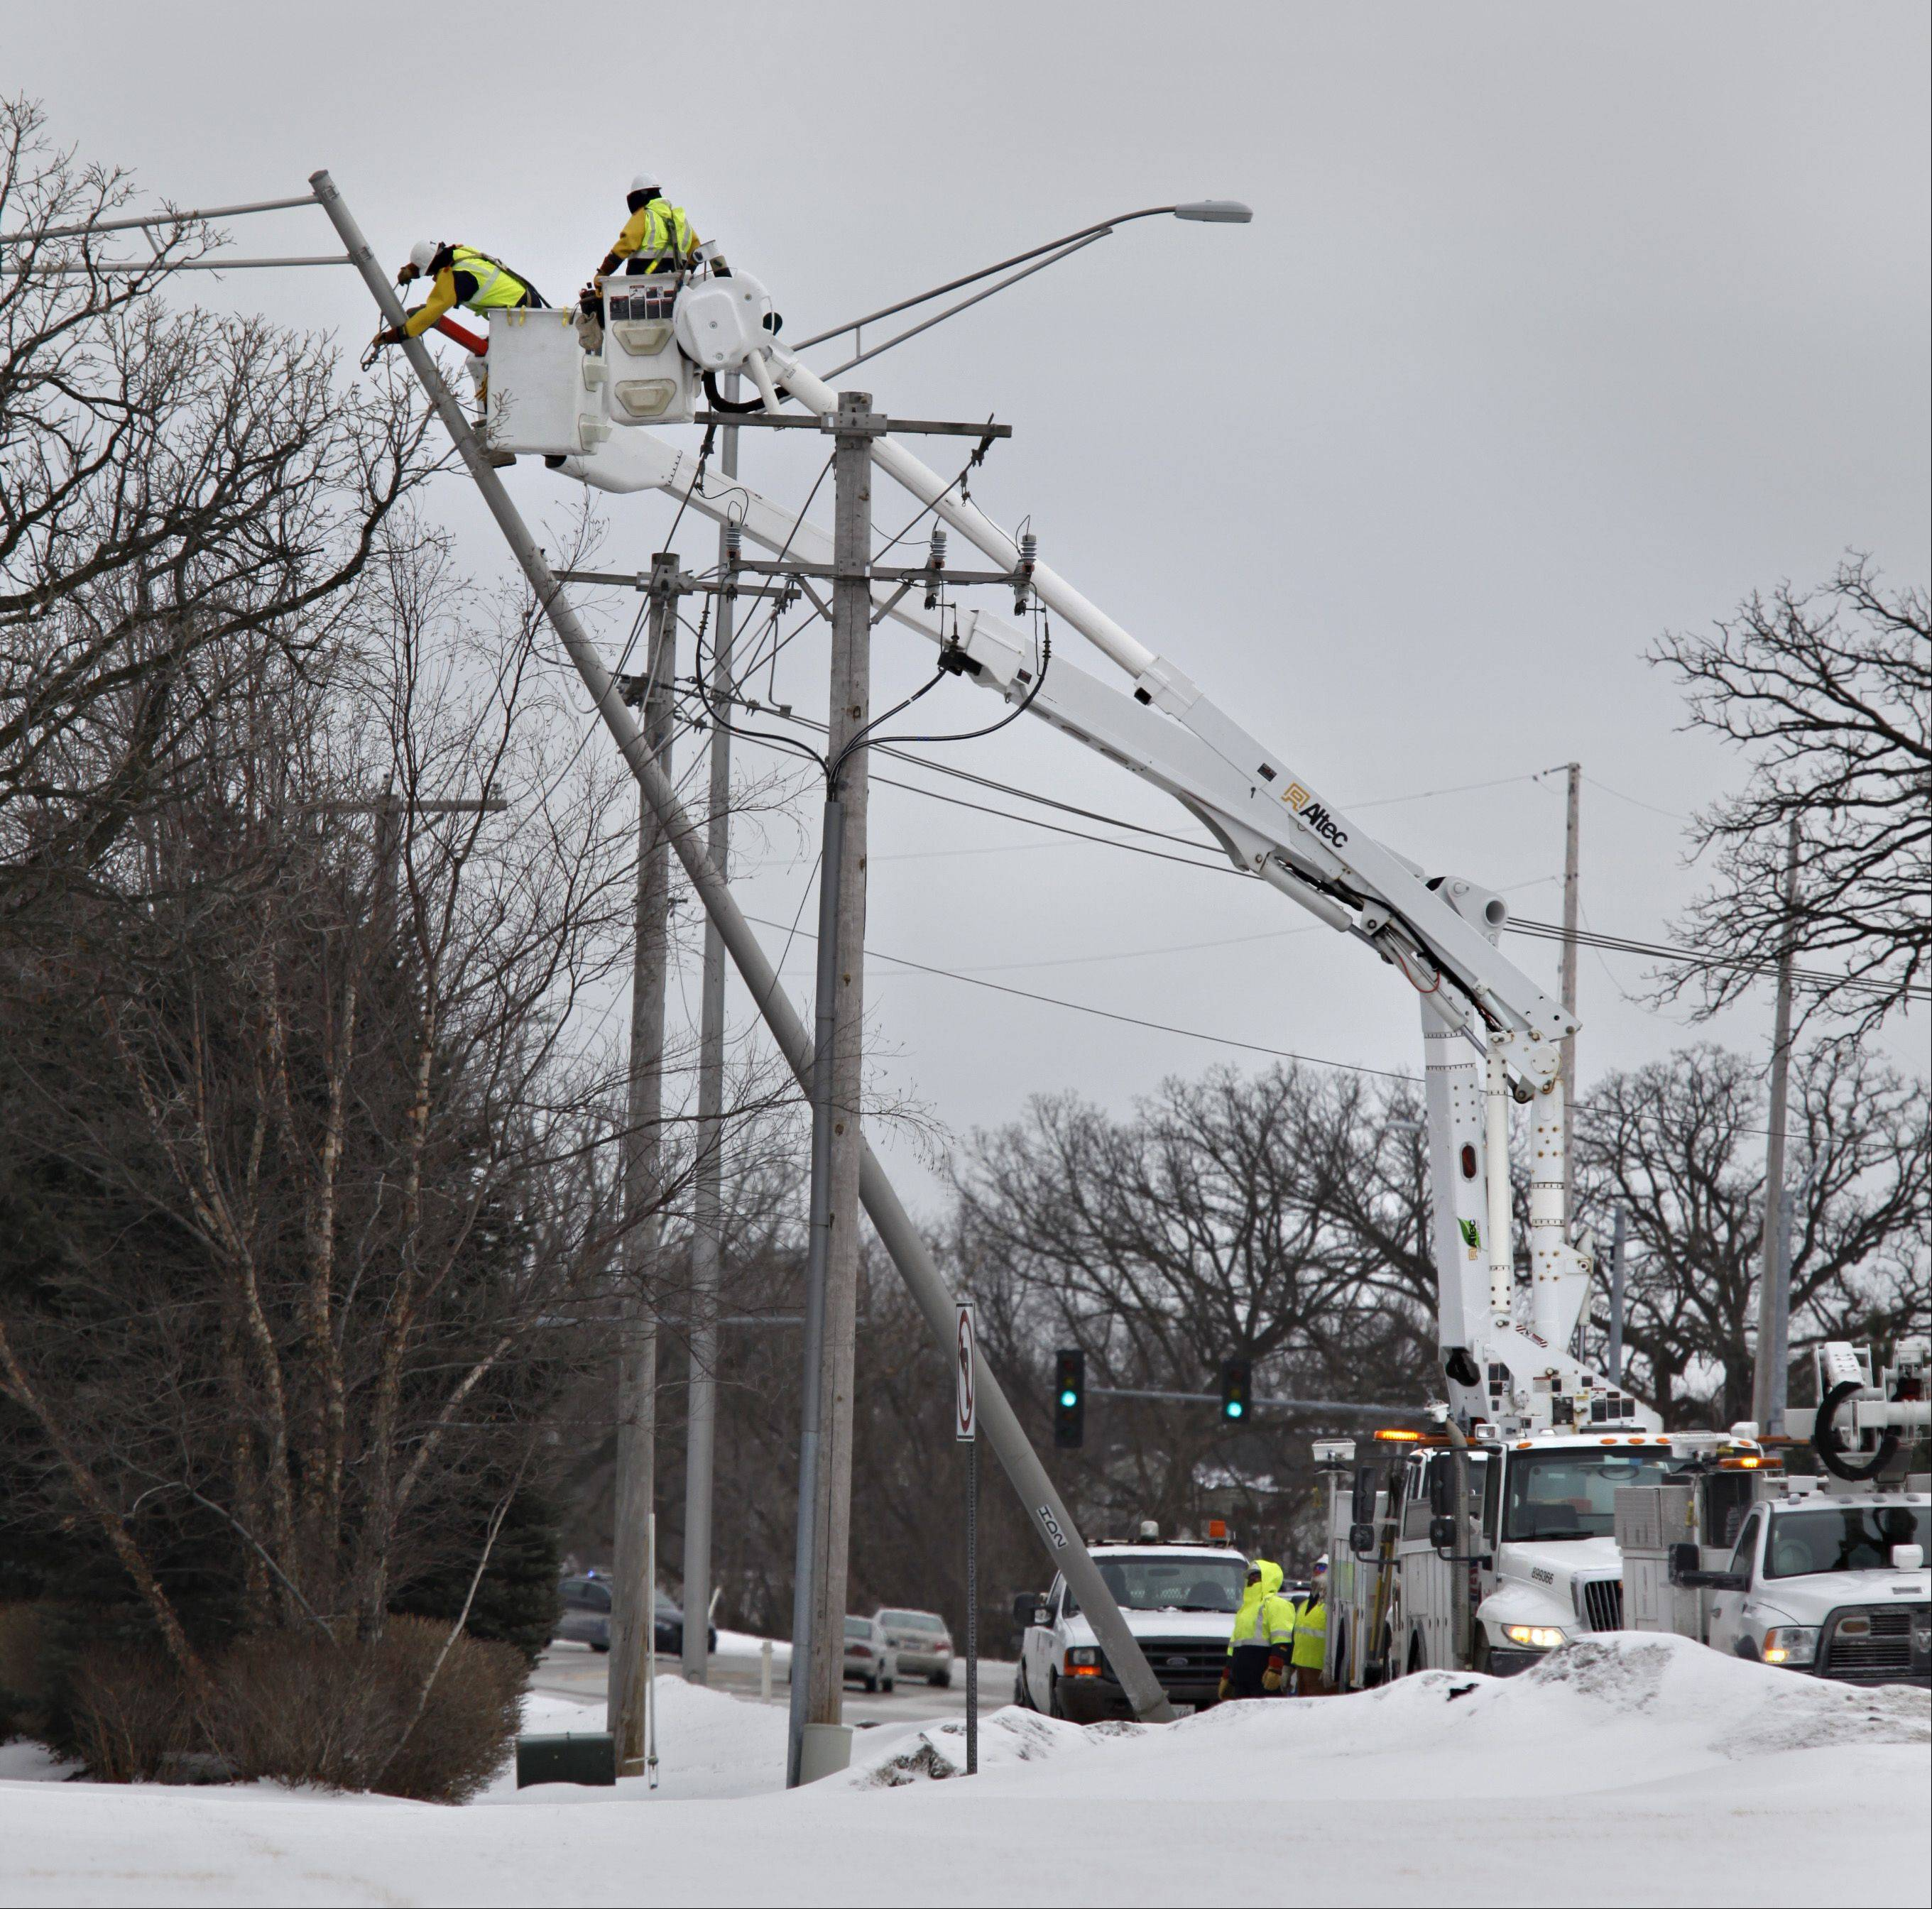 A ComEd crew works to secure an overhead streetlight along Huntley Road in Carpentersville that was likely blown over in Friday�s high winds, landing on power lines below. More than 1,000 residents in Carpentersville, Algonquin and West Dundee were out of power for nearly 90 minutes.